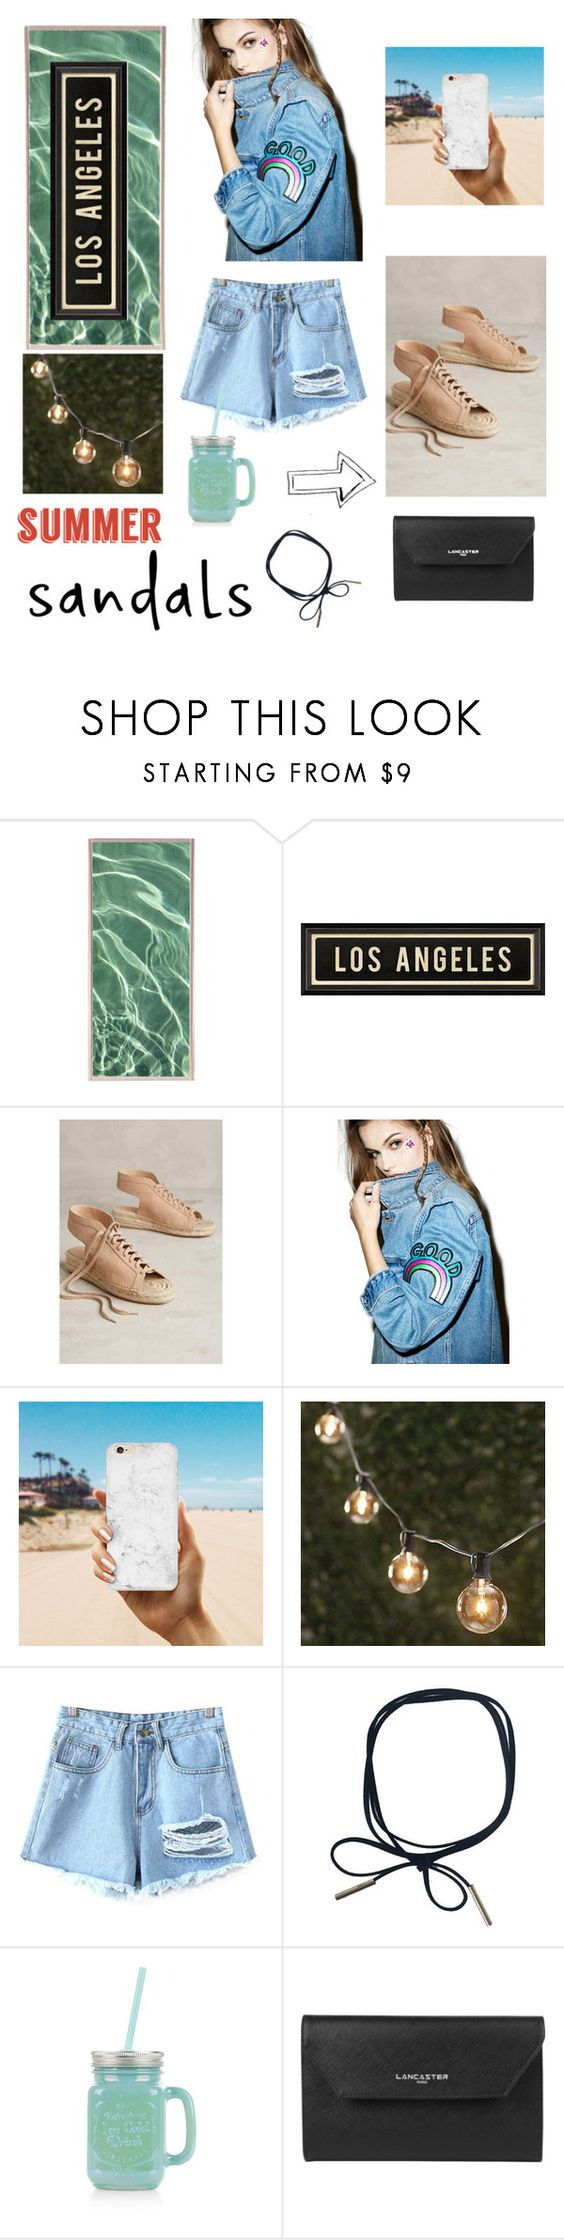 """""""#summersandals"""" by xxdimanaxx ❤ liked on Polyvore featuring Natural Curiosities, Dot & Bo, Pour La Victoire, The Ragged Priest, Thos. Baker, Chicnova Fashion, New Look, Lancaster and summersandals"""